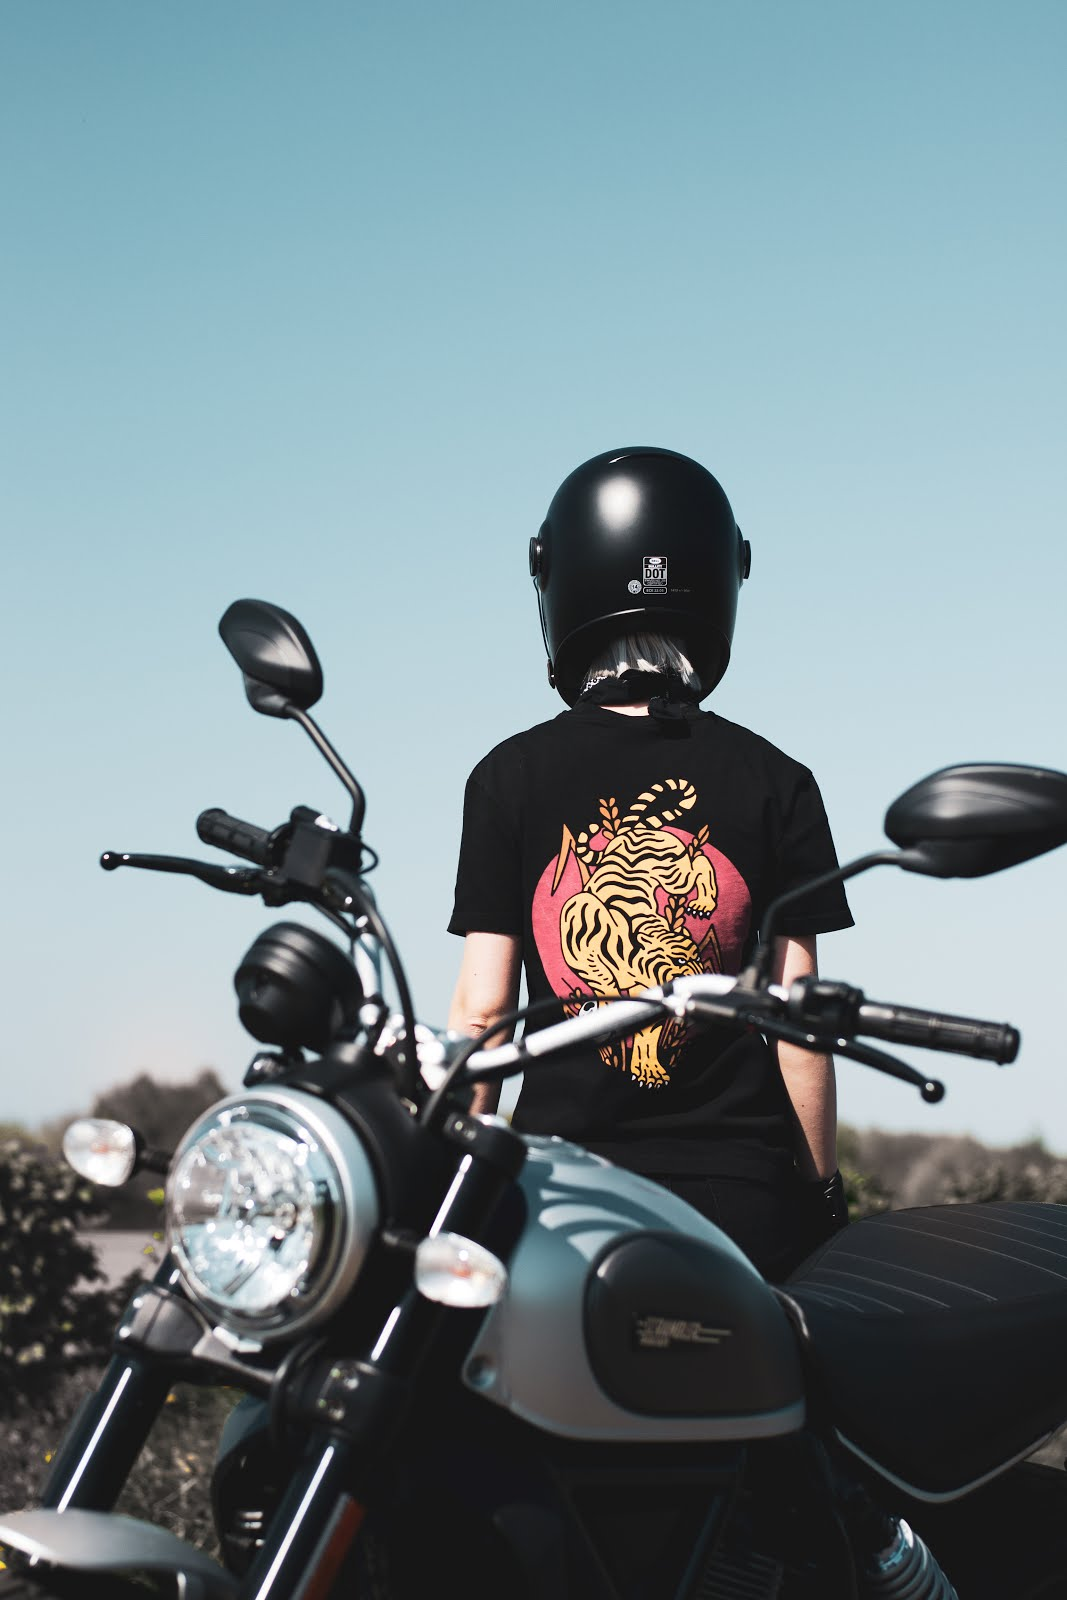 P&co, pandco, provision & co, one for the road collection, long sleeve, t-shirt, crew socks, scrambler ducati, motorcycle women, street style, outfit